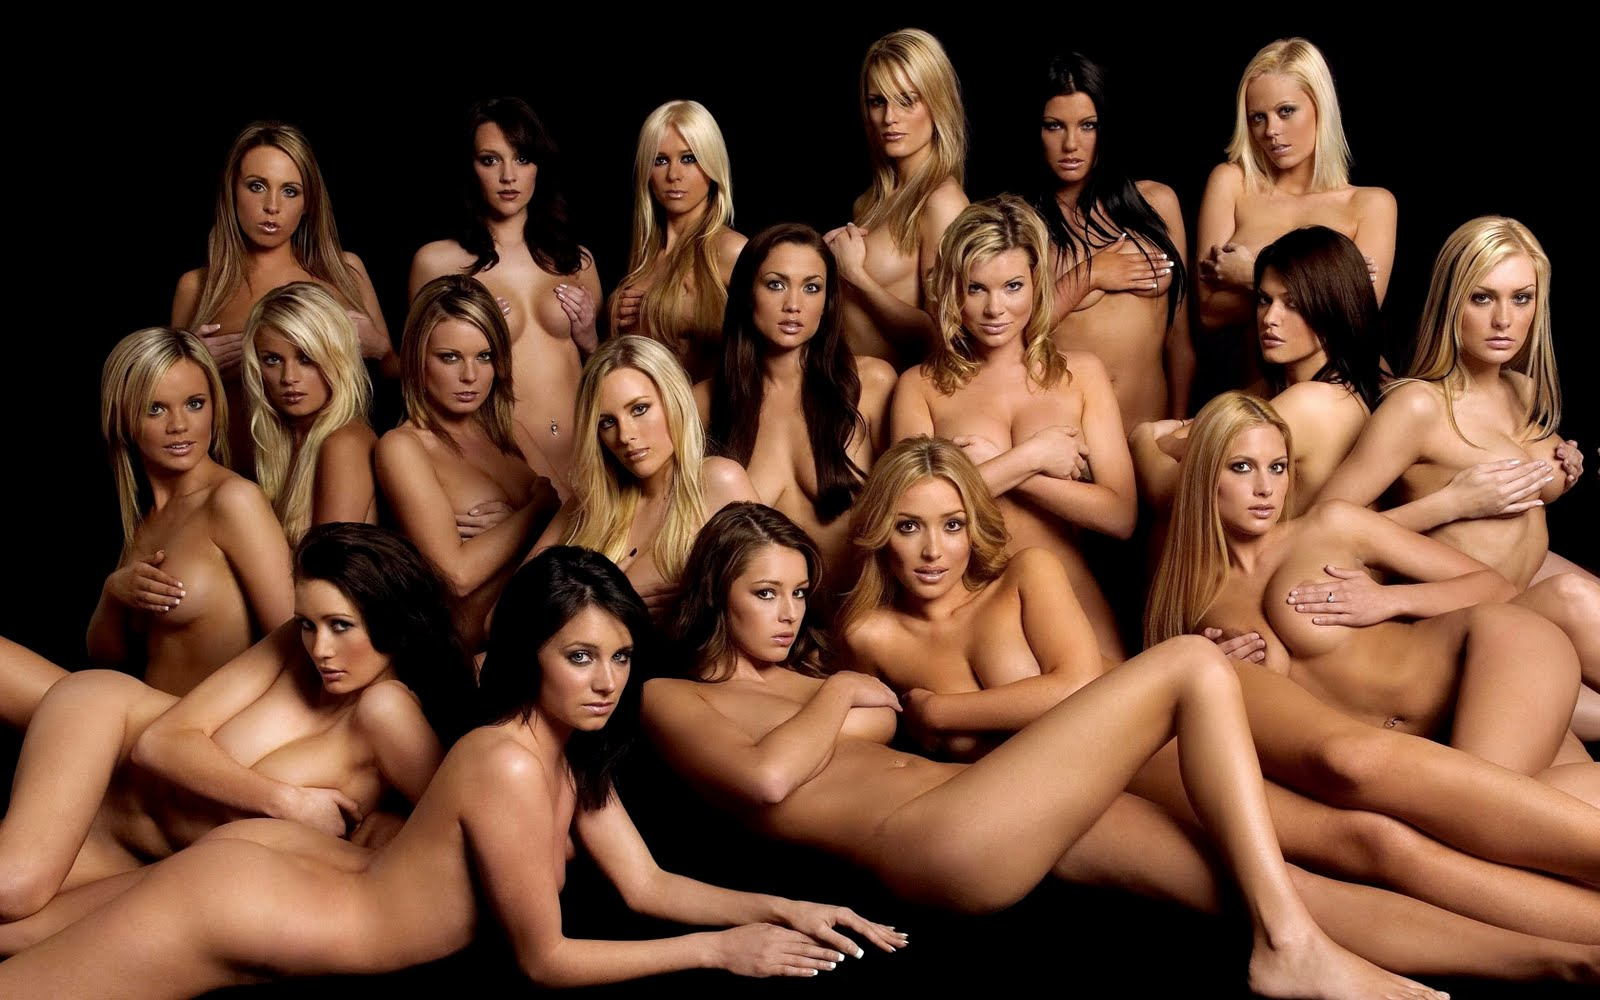 Girl Group Of Naked Women